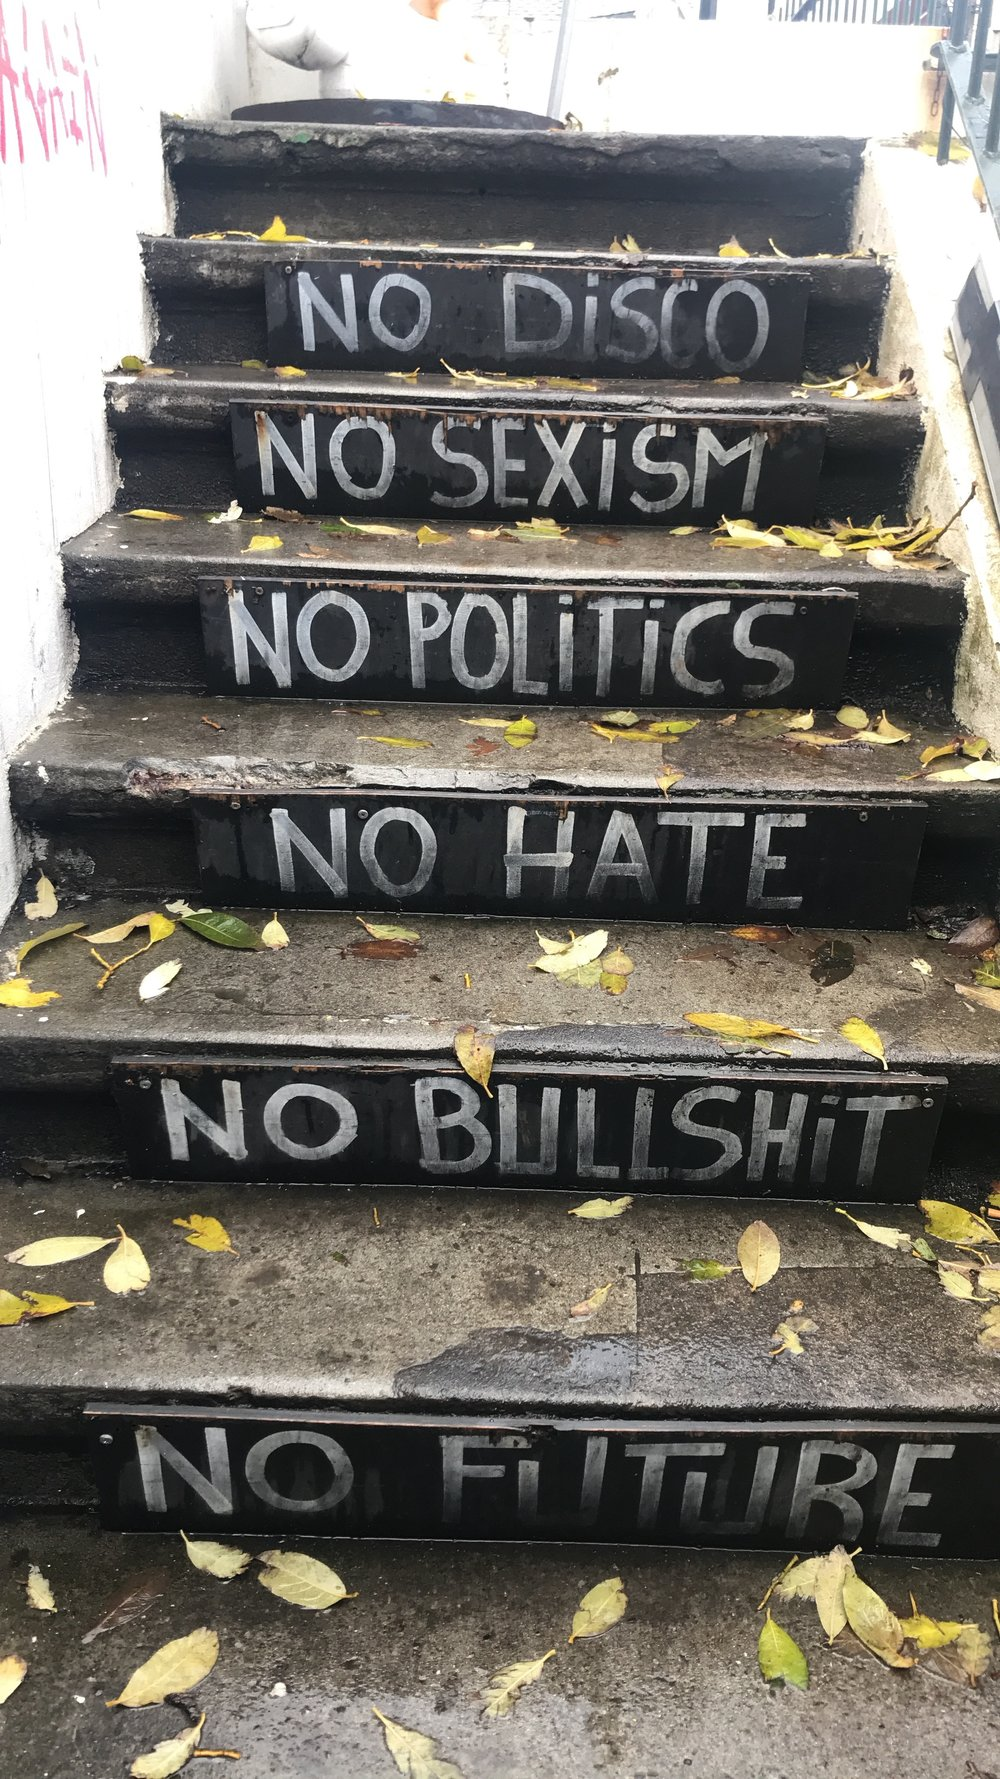 Stairs leading down to an uderground punk museum in Reykjavik.